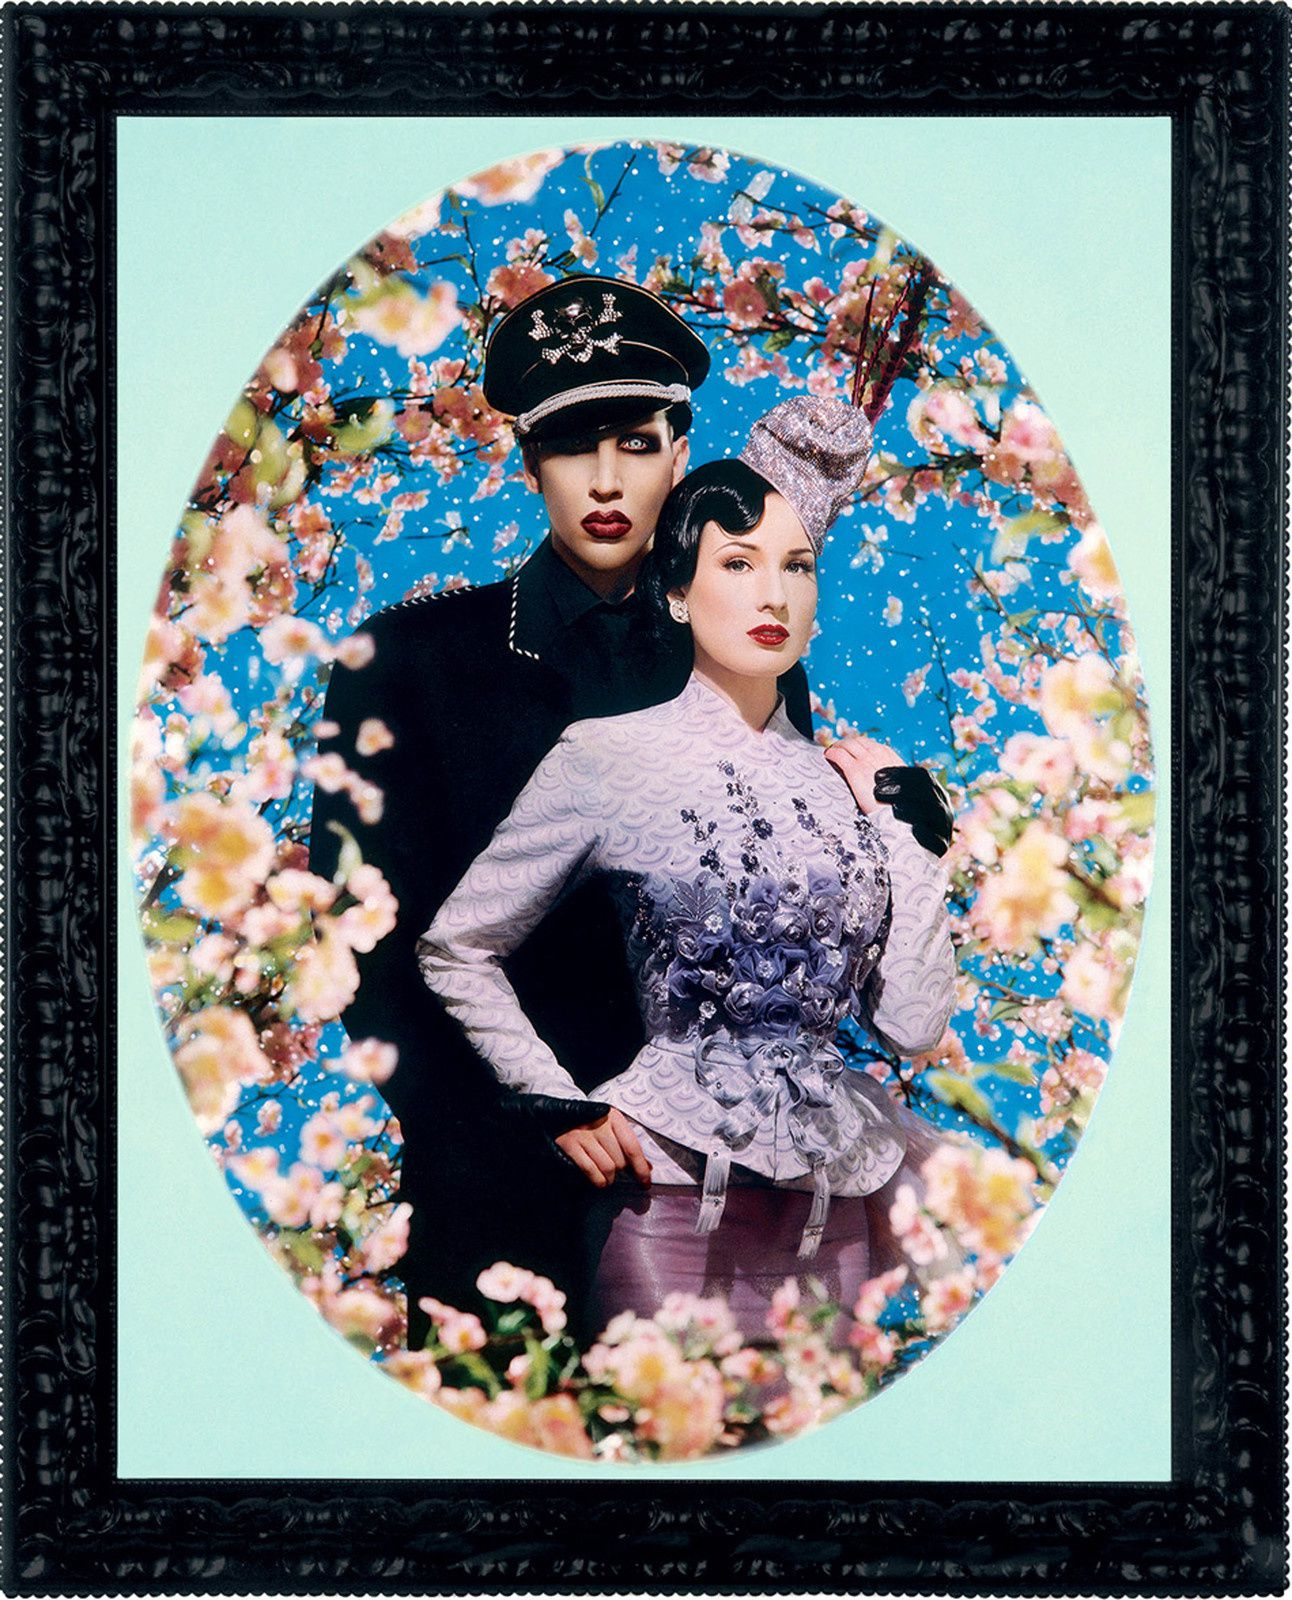 """Le grand amour, Marilyn Manson et Dita Von Teese "", 2004 de PIERRE et GILLES - Courtesy Pinault Collection, Courtesy Noirmonartproduction"